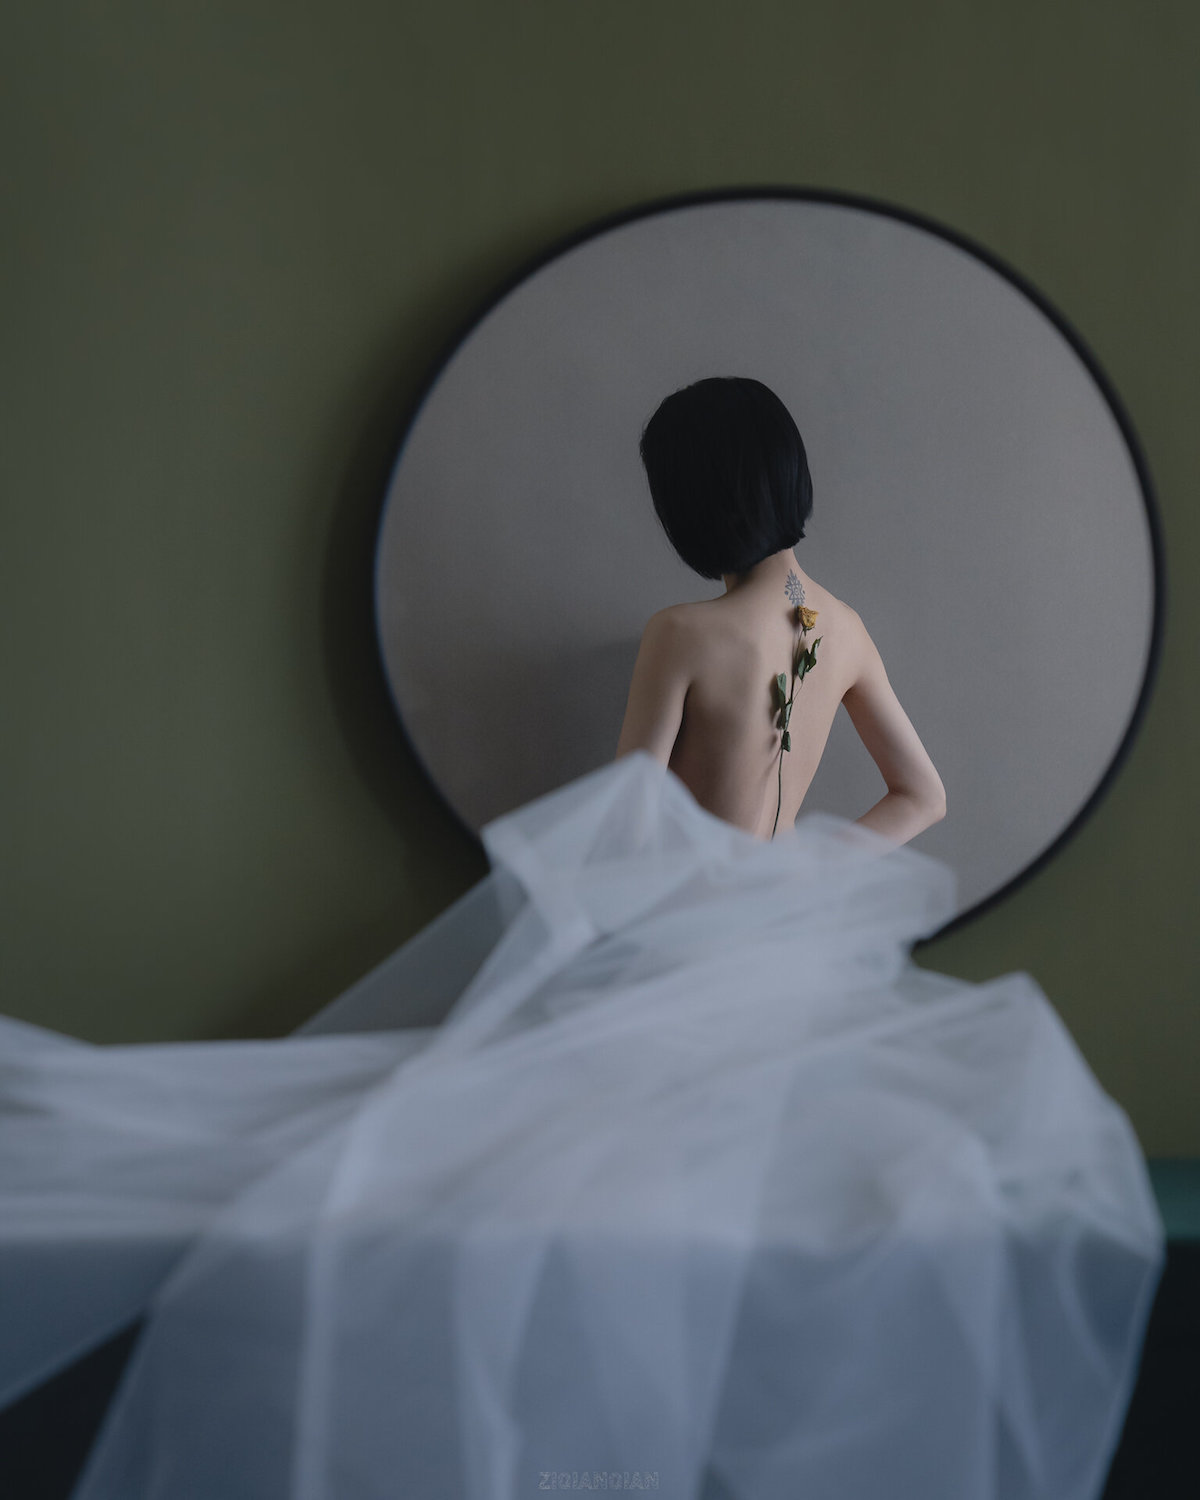 Surreal Self-Portrait Photography by Ziqian Liu